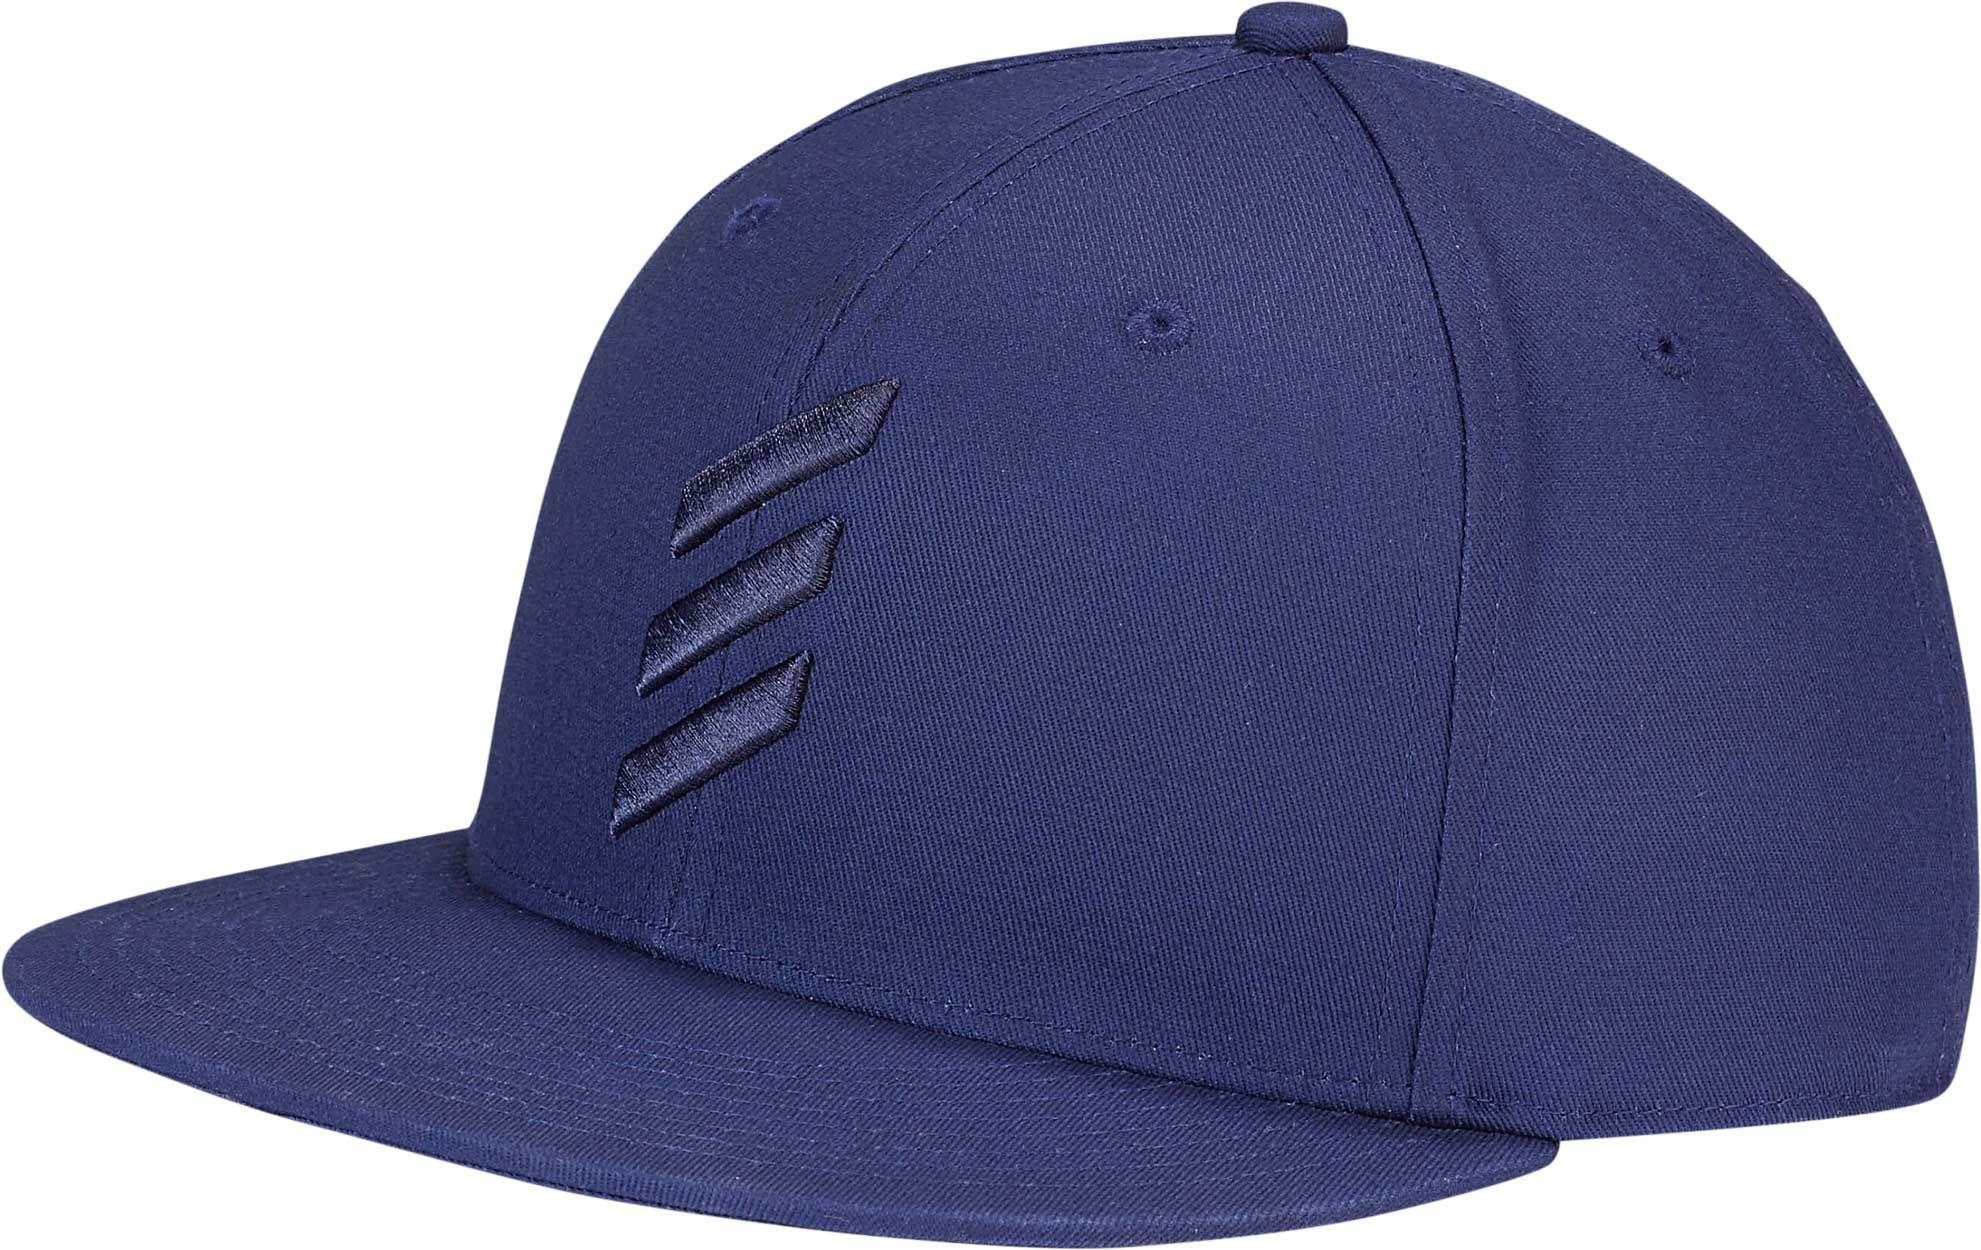 a6659d963fff4 Lyst - adidas Adicross Flat Brim Golf Hat in Blue for Men